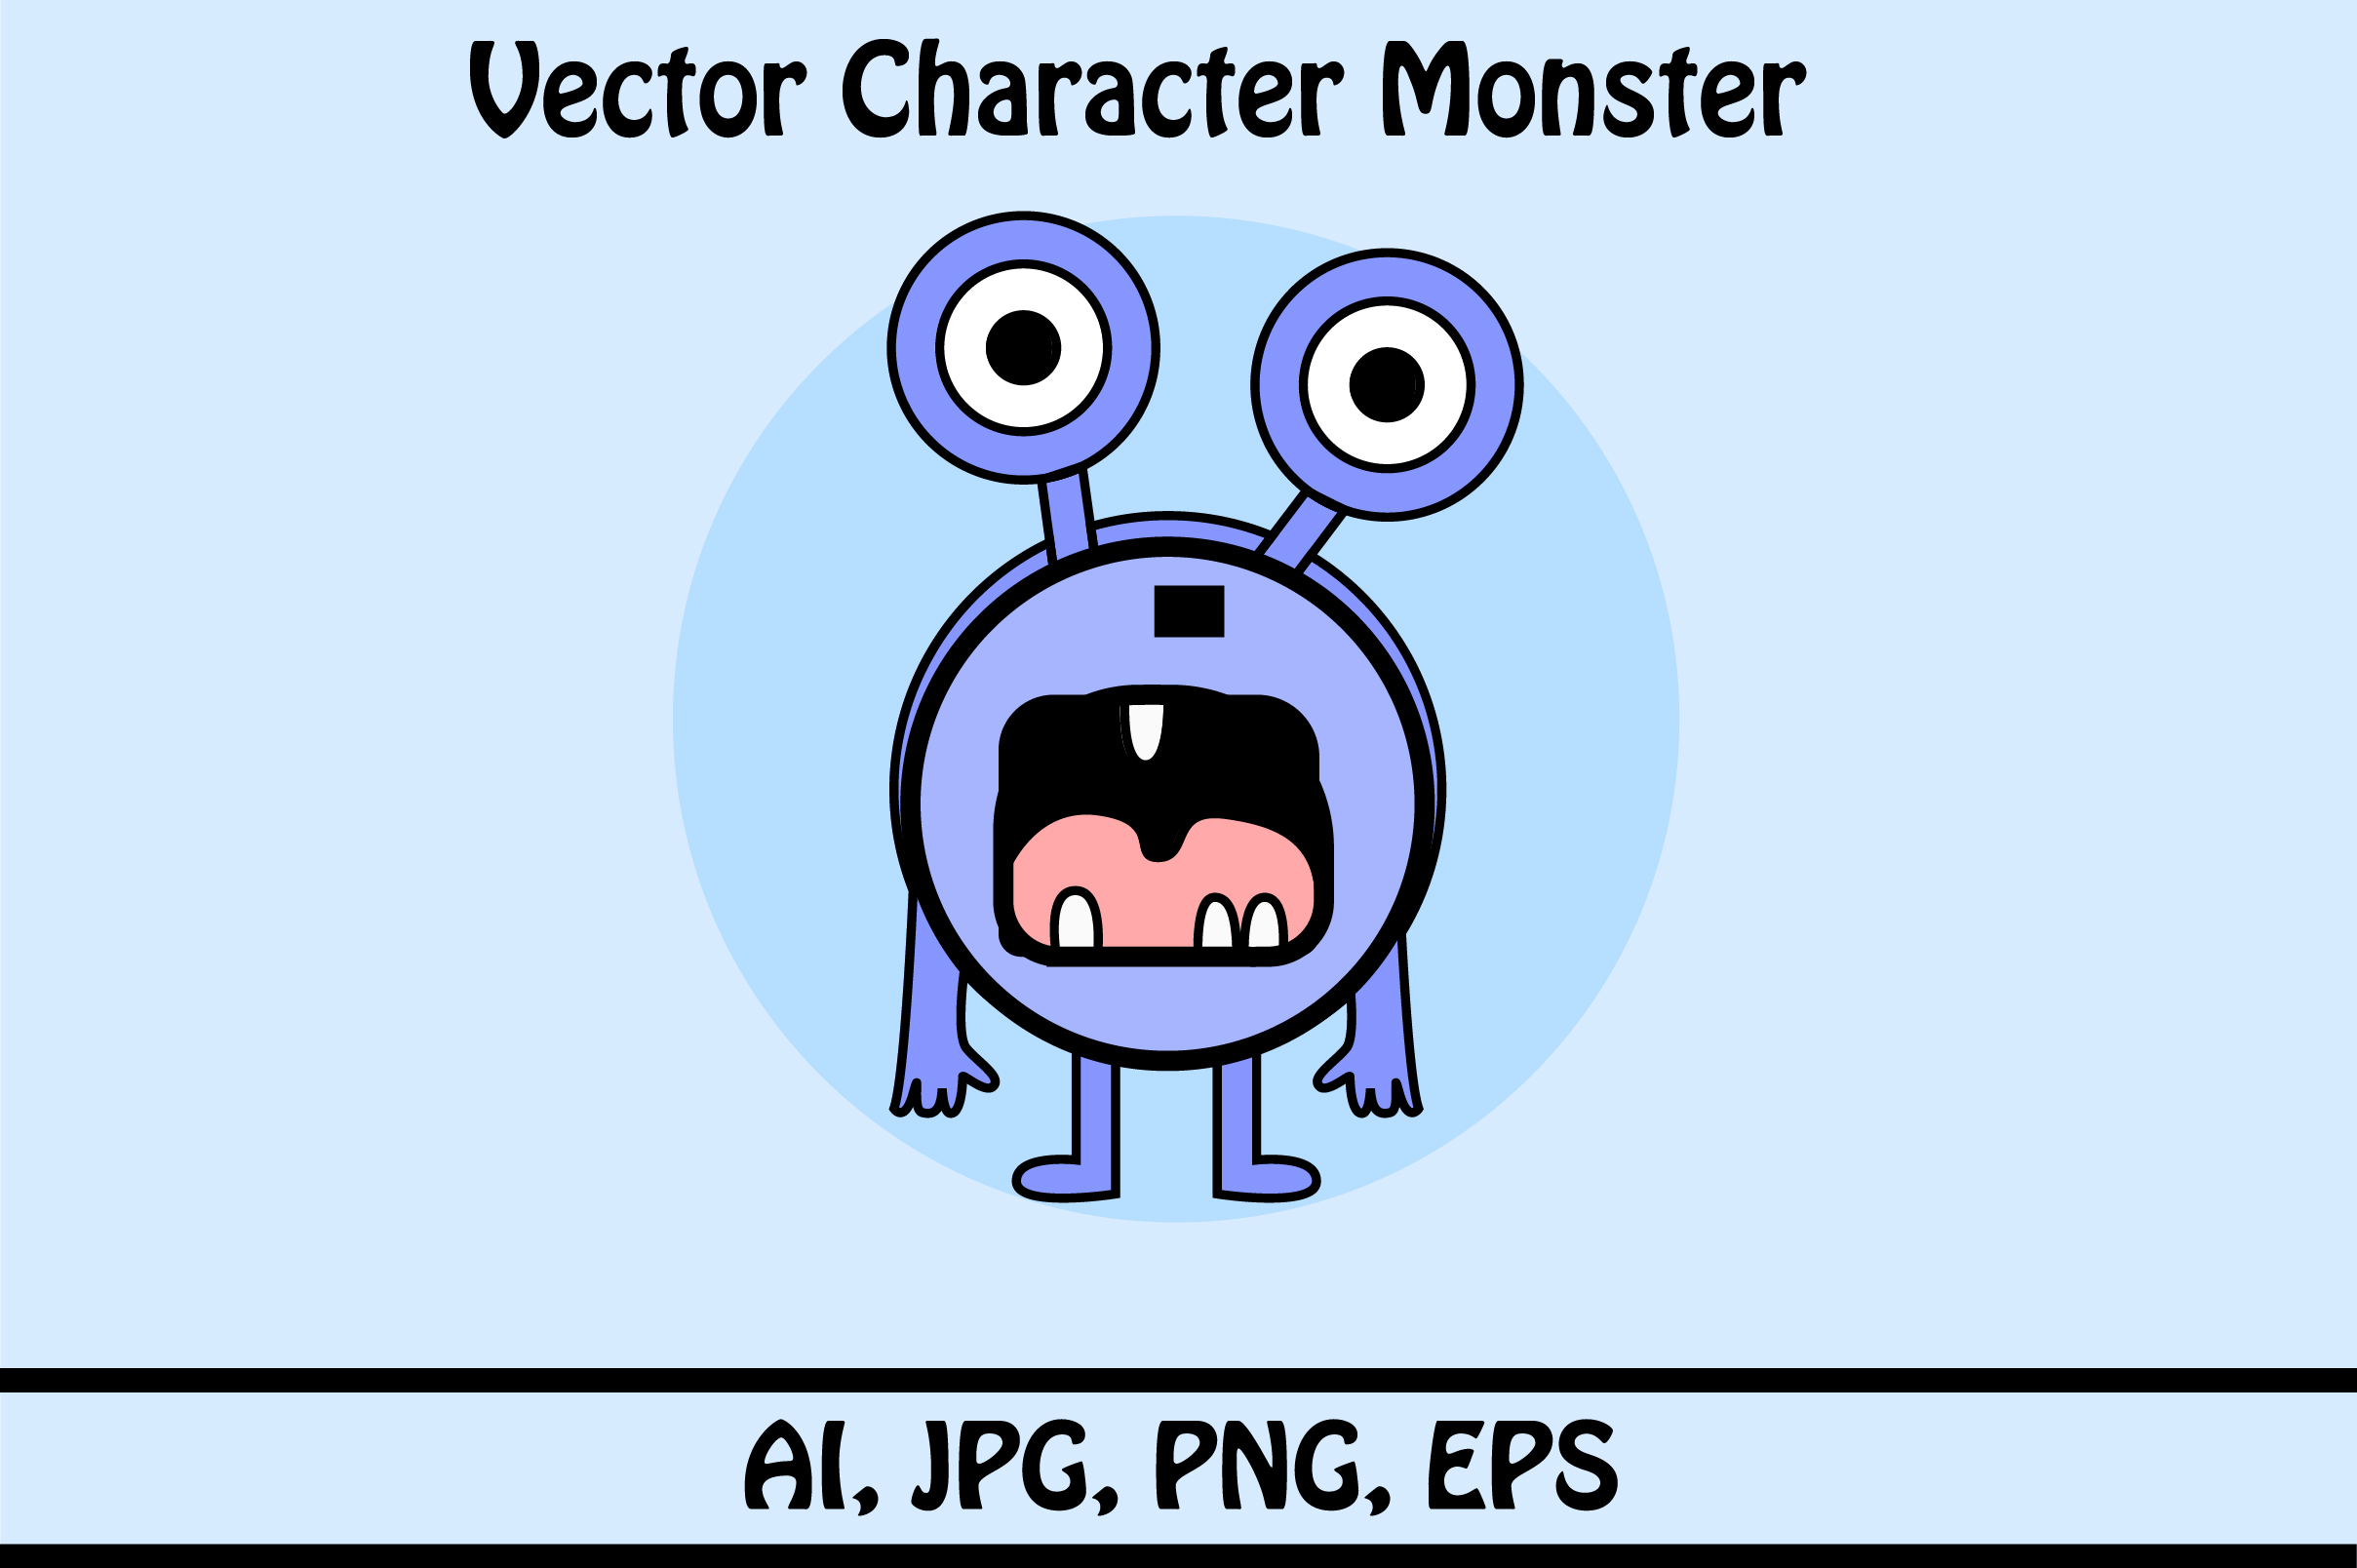 Download Free Vector Character Monster Graphic By Rafcreative3 Creative Fabrica for Cricut Explore, Silhouette and other cutting machines.